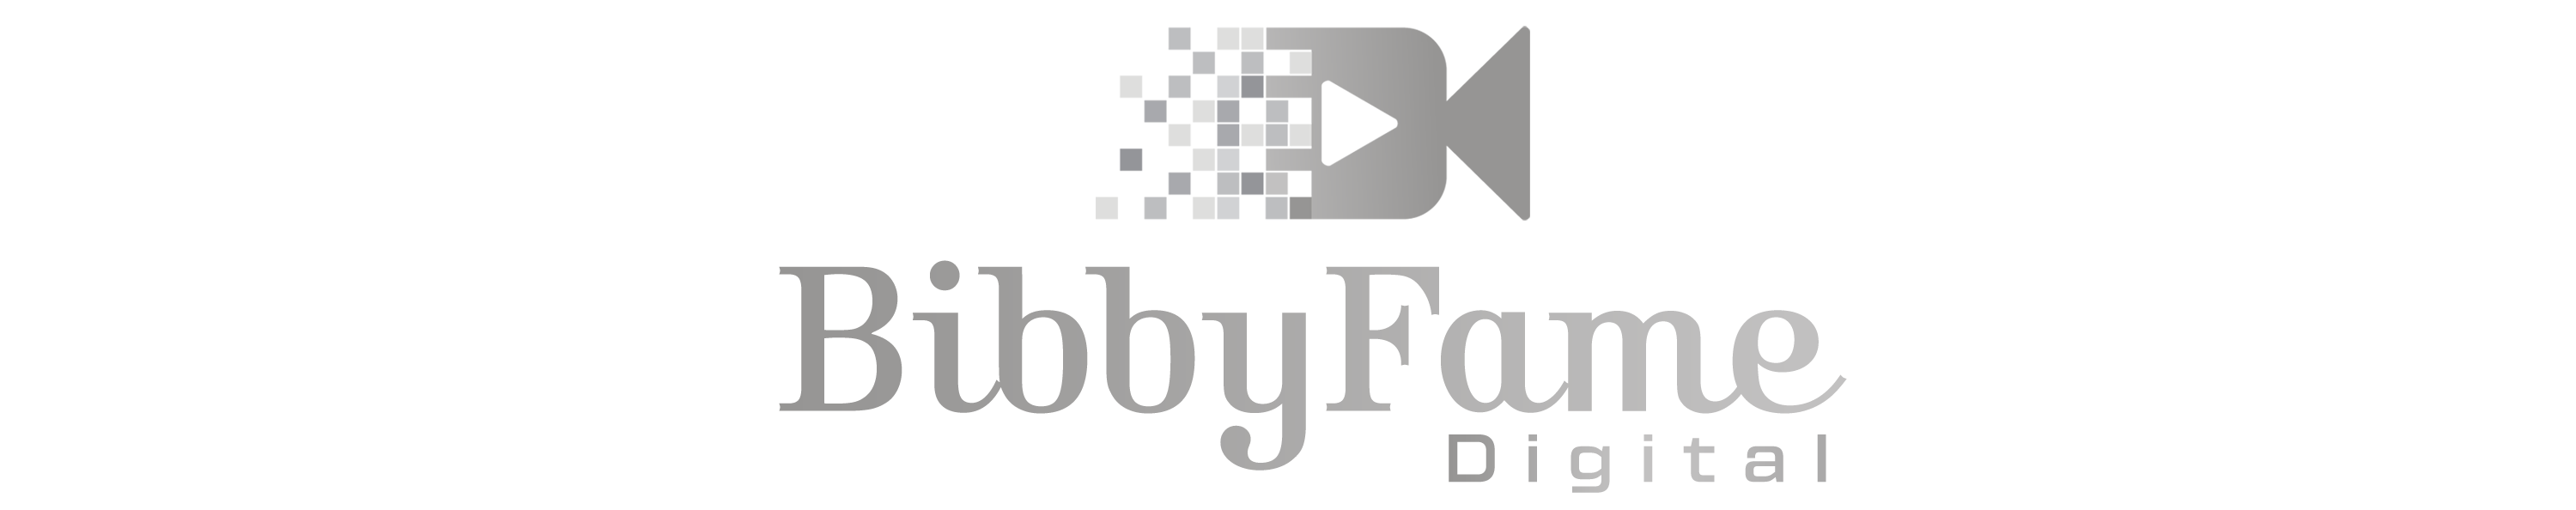 BibbyFame Digital: Boutique Photo & Video Production Company